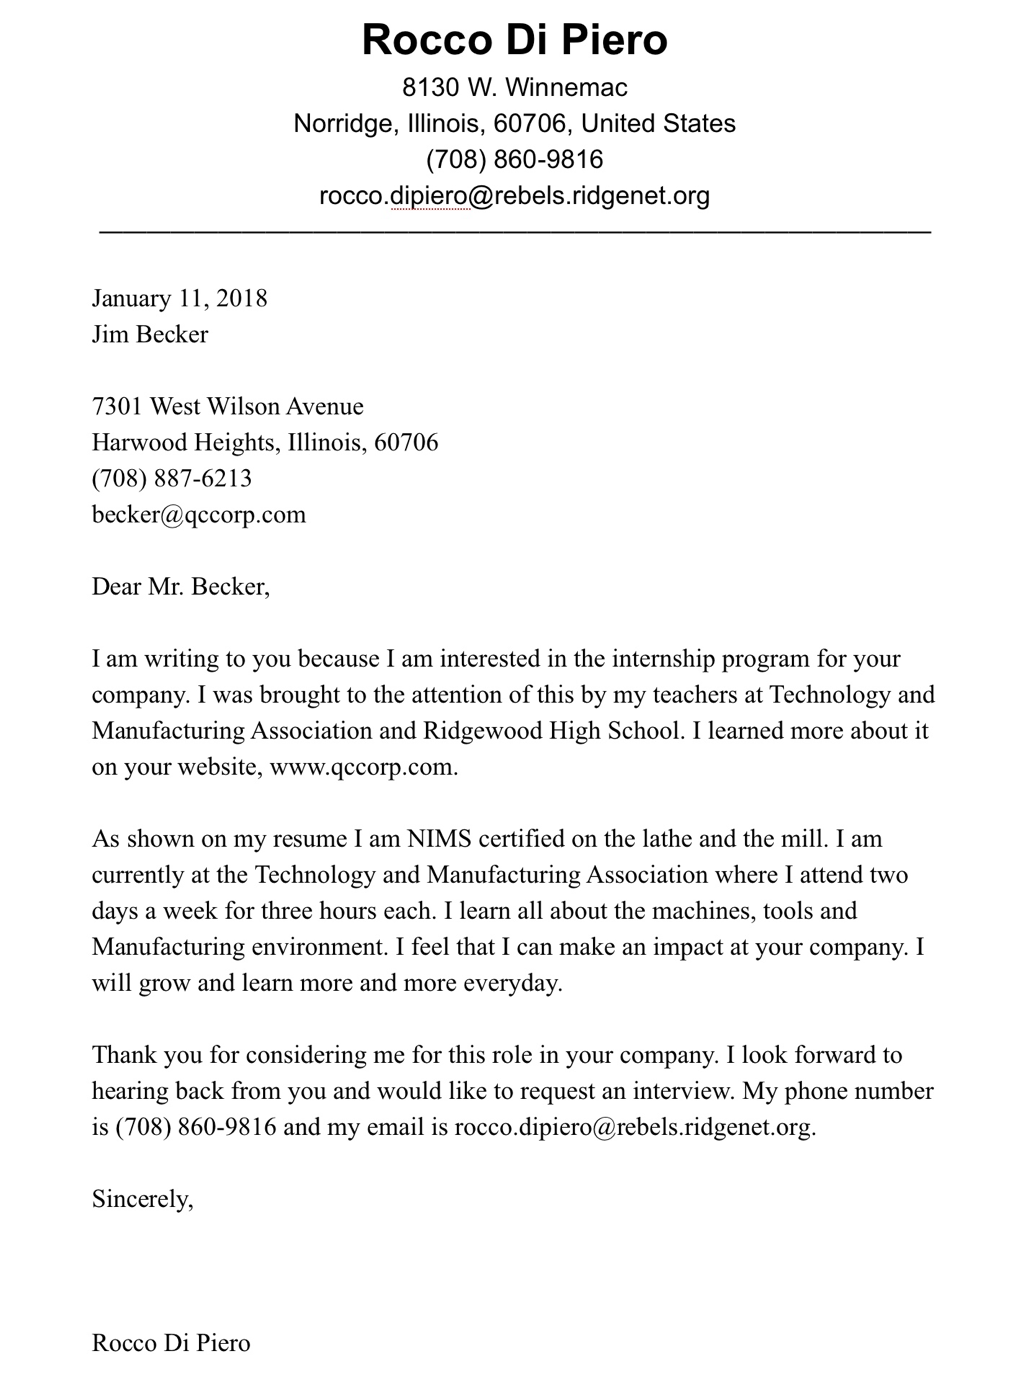 cover letter  resume  and references